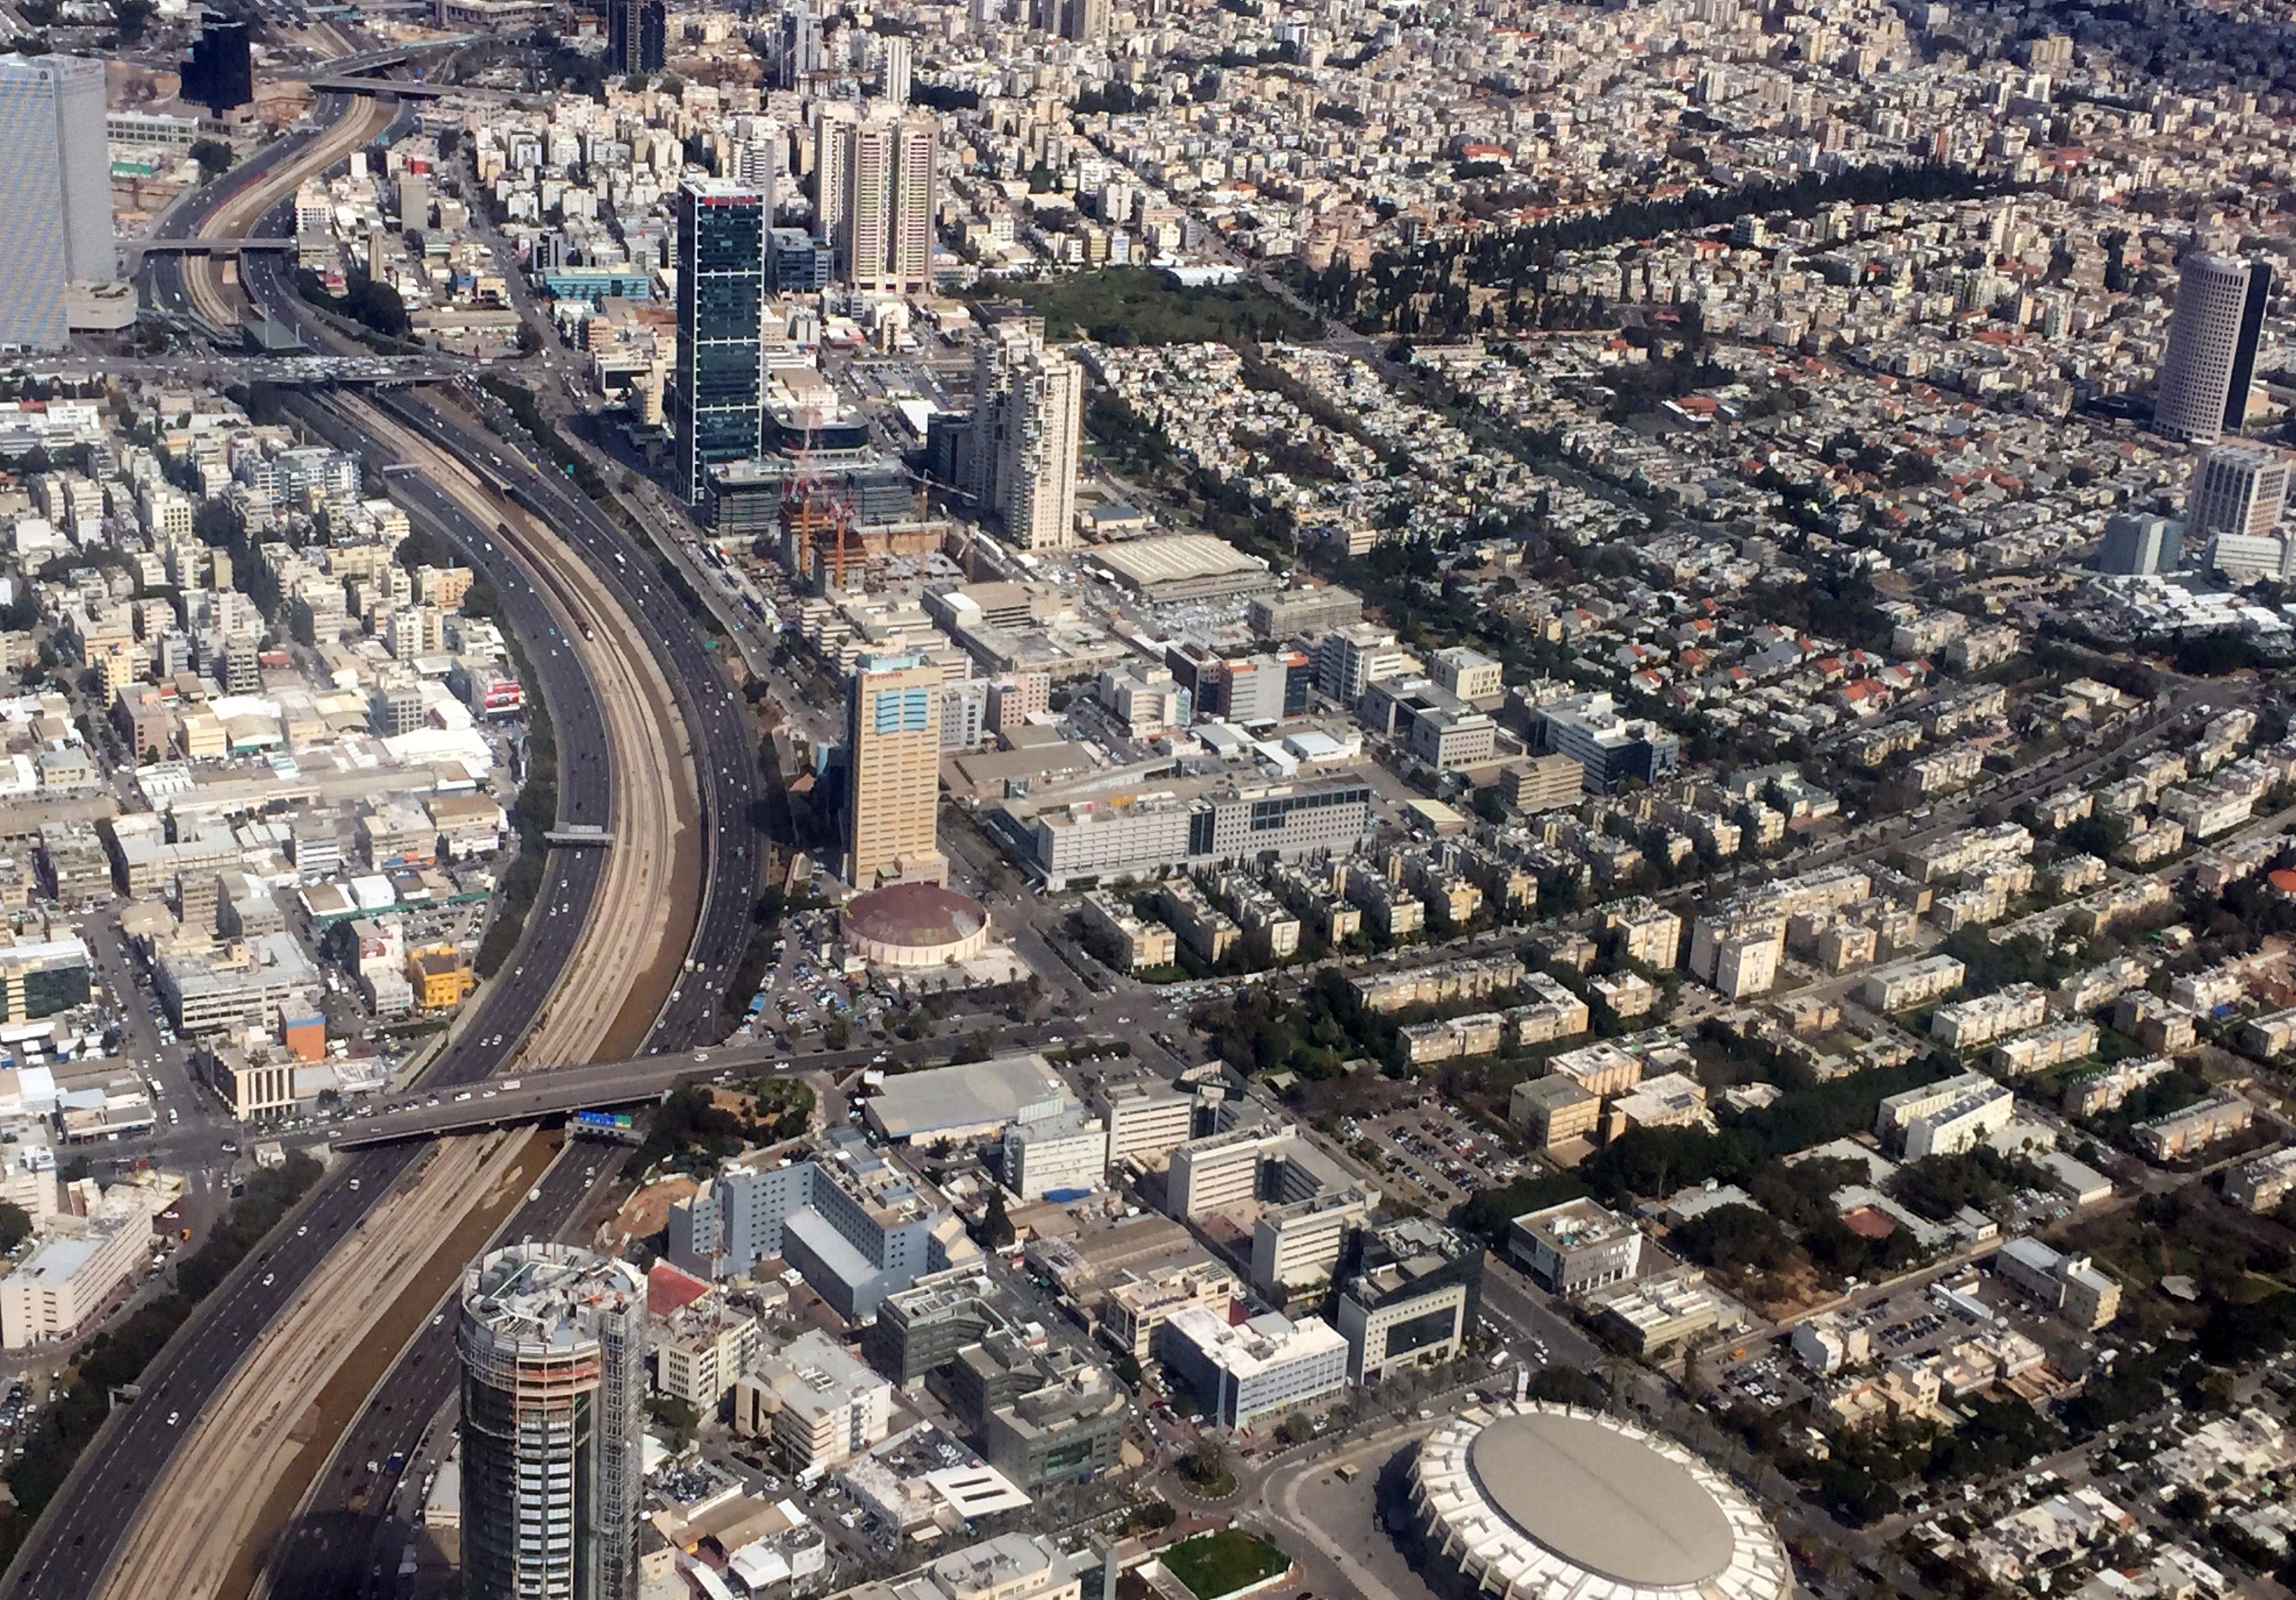 Israel's startups are hungry for scale, exposure and a chance to test themselves in the global market, and they've built an international reputation for innovation and agility.